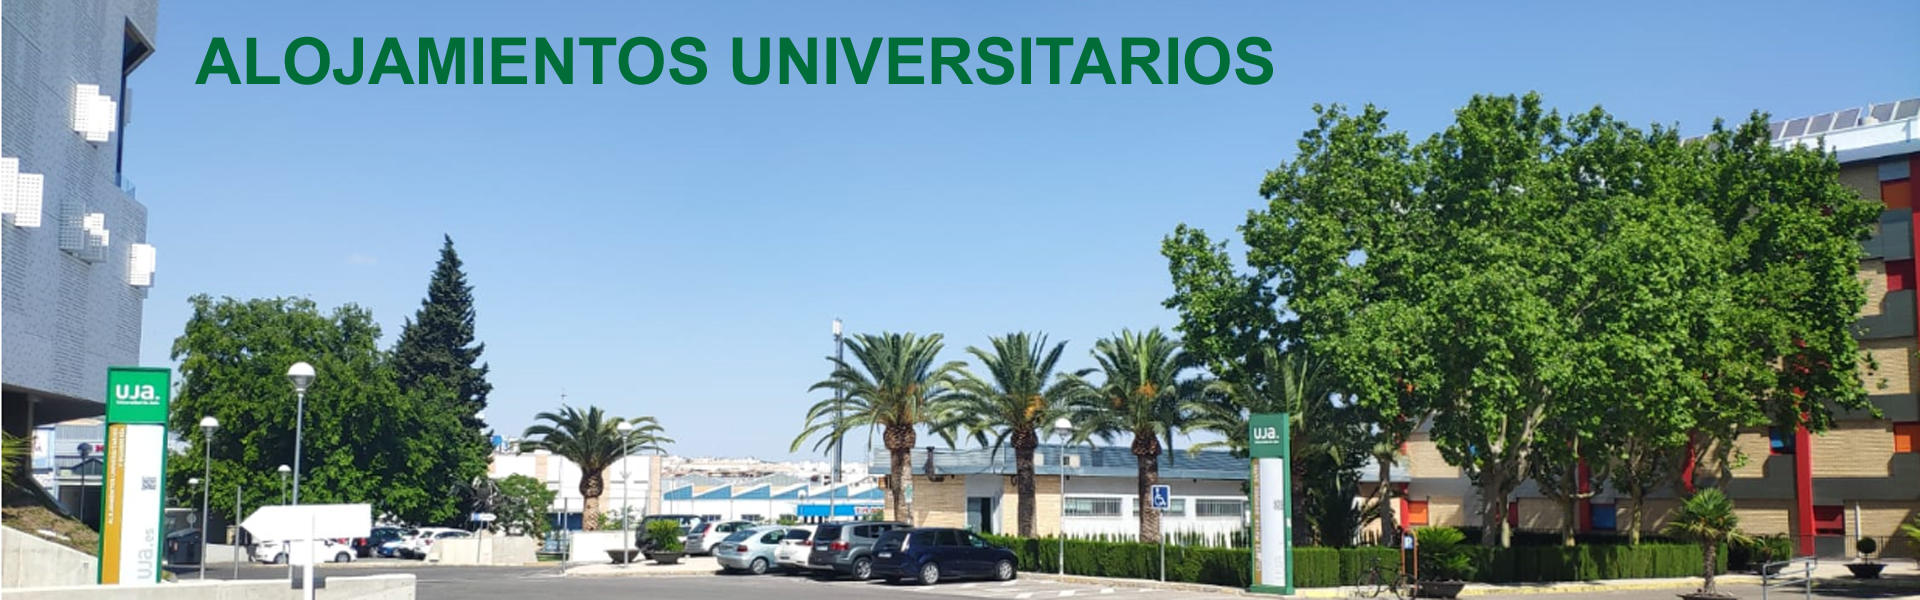 Colegio Mayor Domingo Savio y Apartamentos Universitarios de la UJA